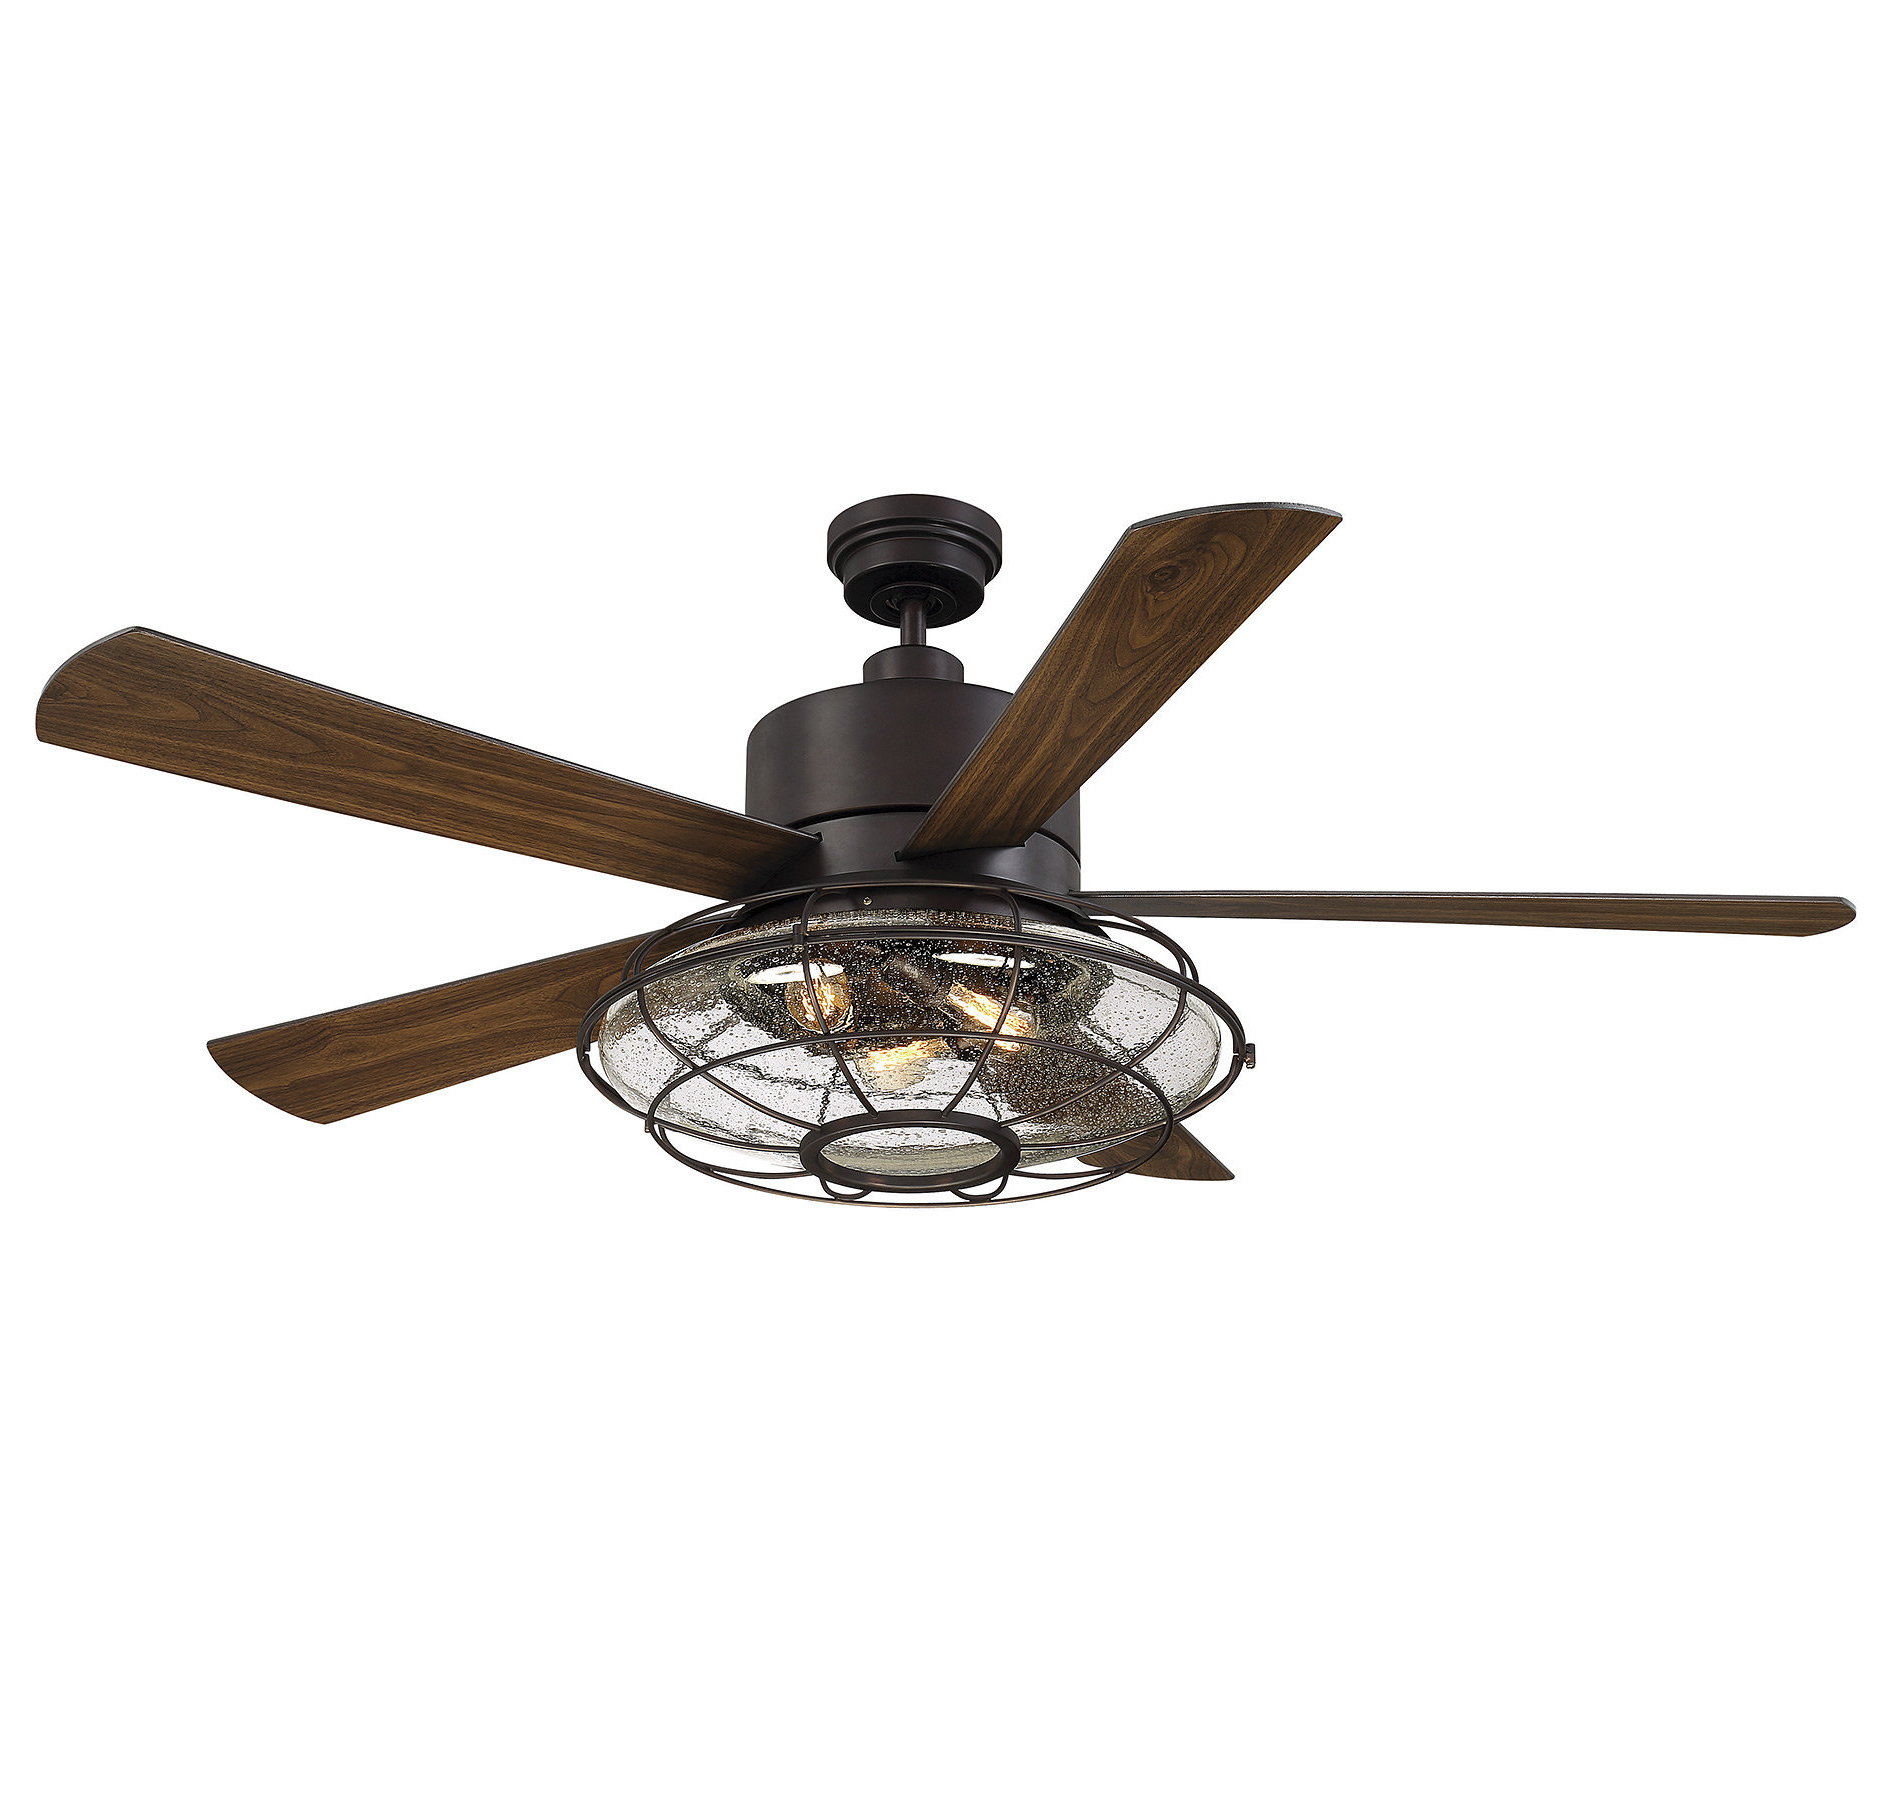 "2020 Ravenna 5 Blade Ceiling Fans Throughout 56"" Roberts 5 Blade Ceiling Fan With Remote Control, Light Kit Included (View 20 of 20)"